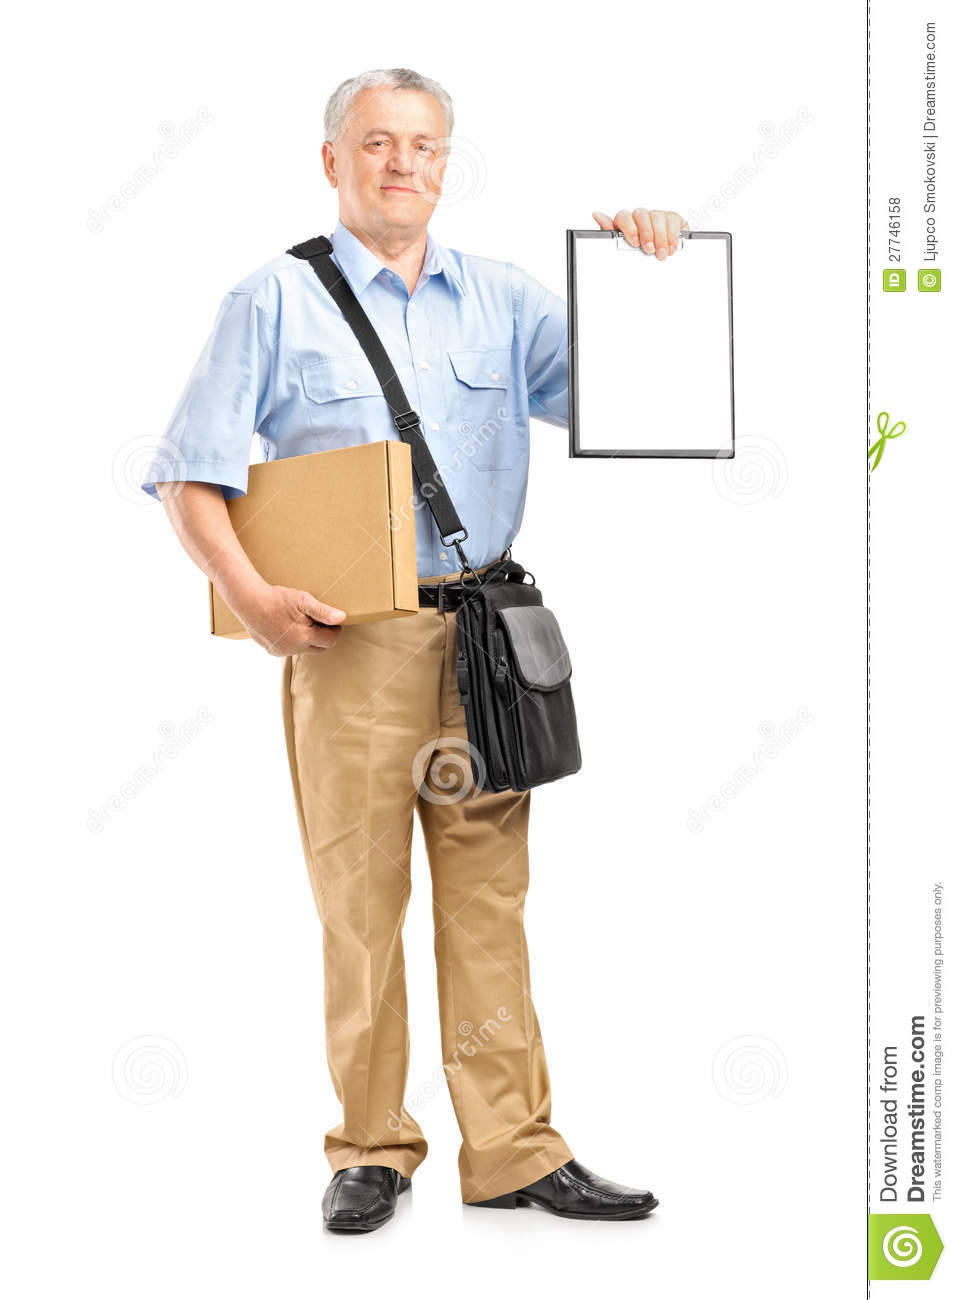 Delivery Person Holding A Clipboard And Box Royalty Free Stock ...